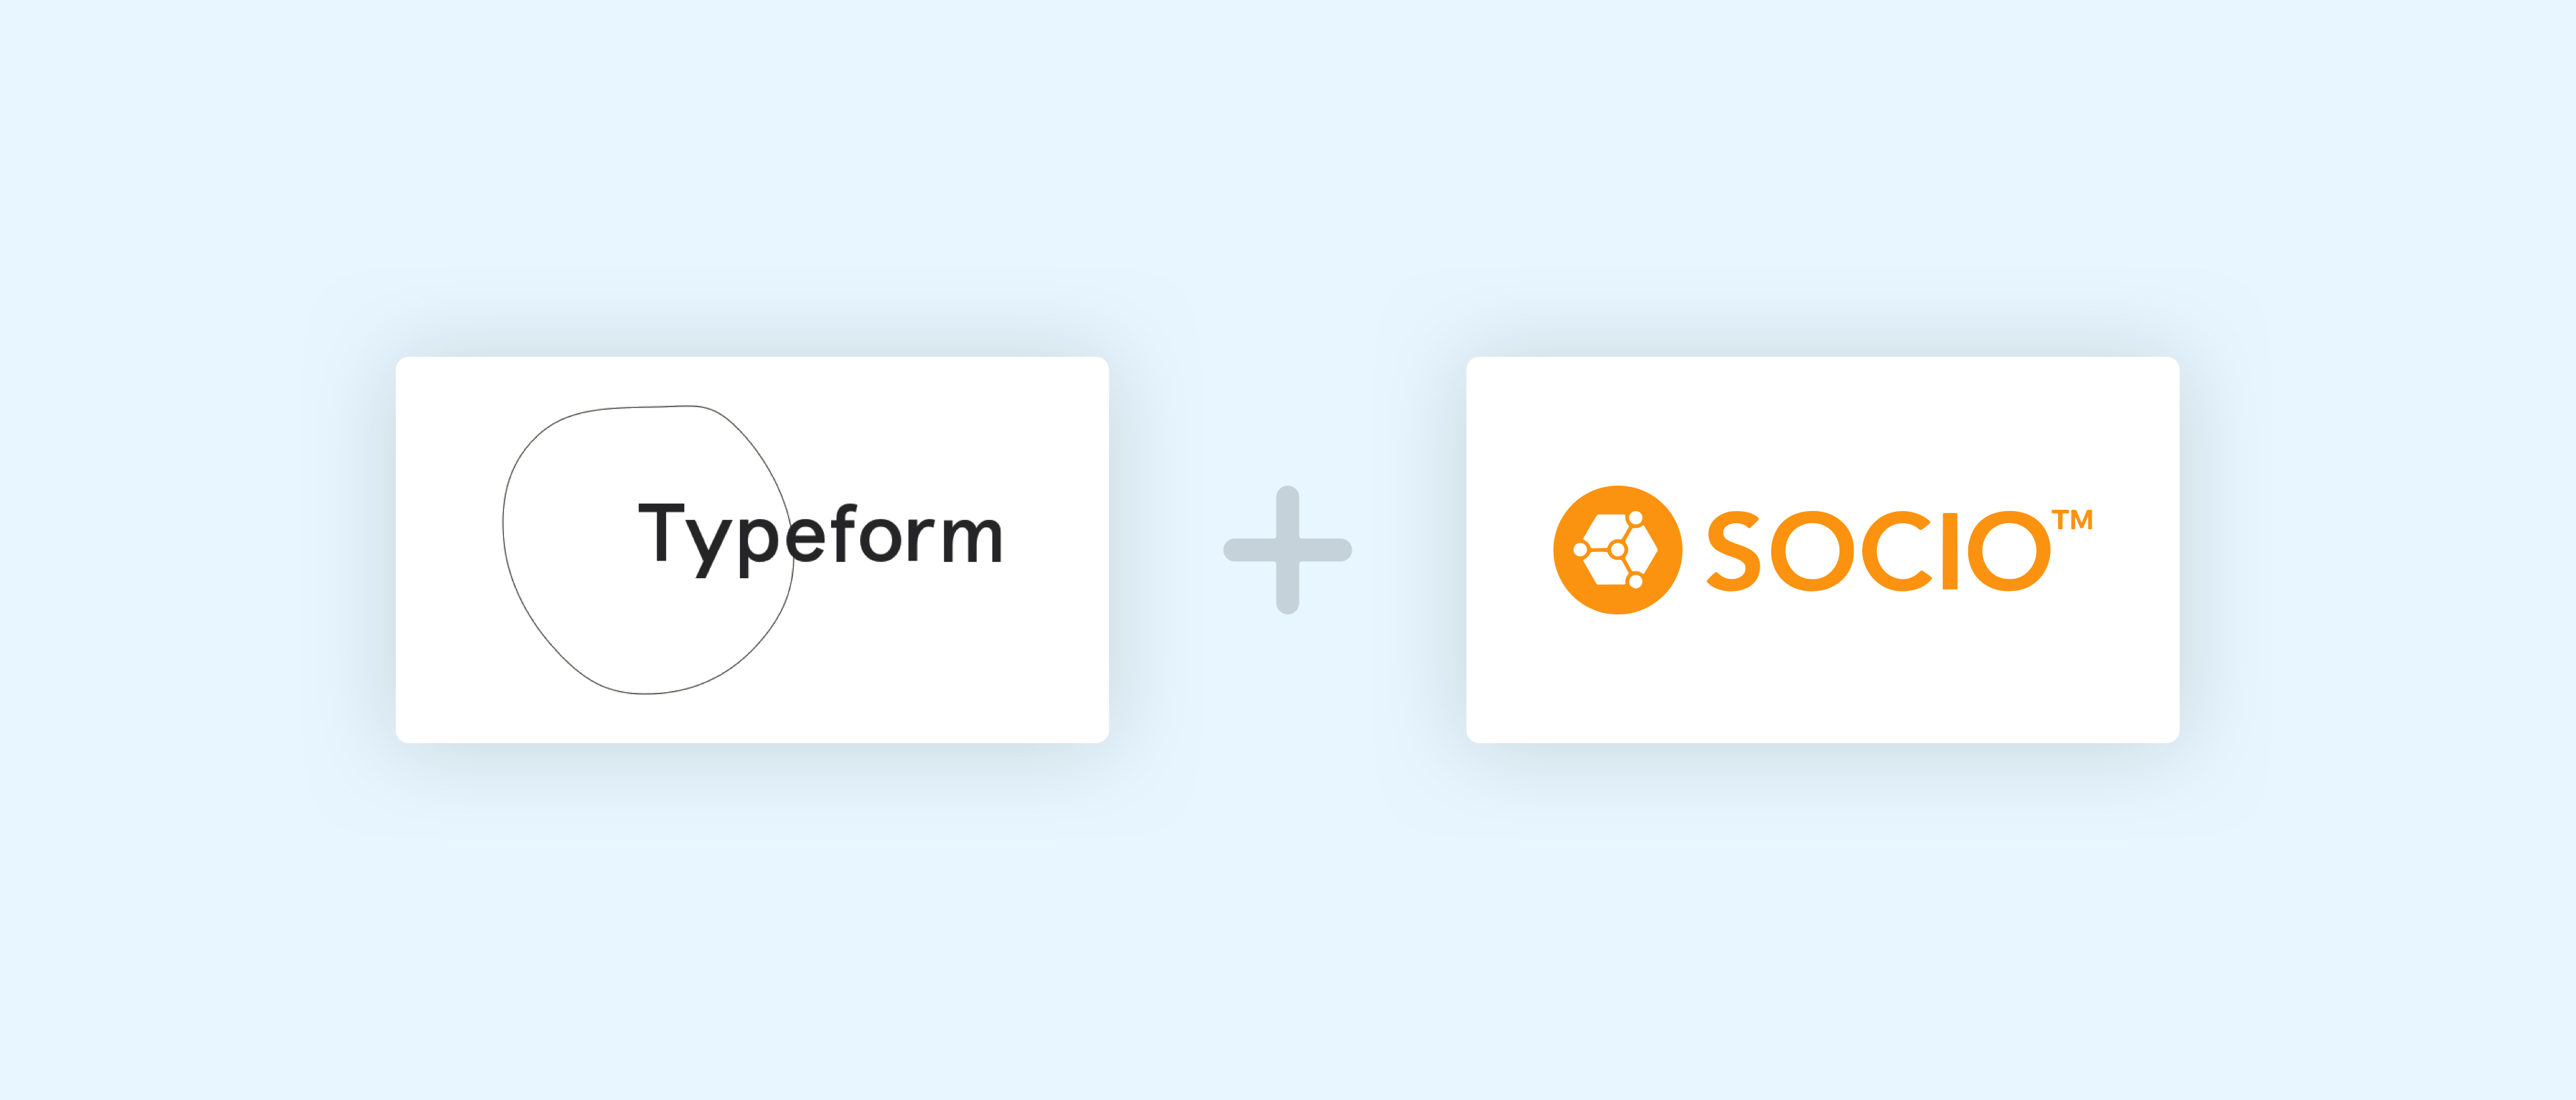 Image of the Typeform and Socio logos side by side.